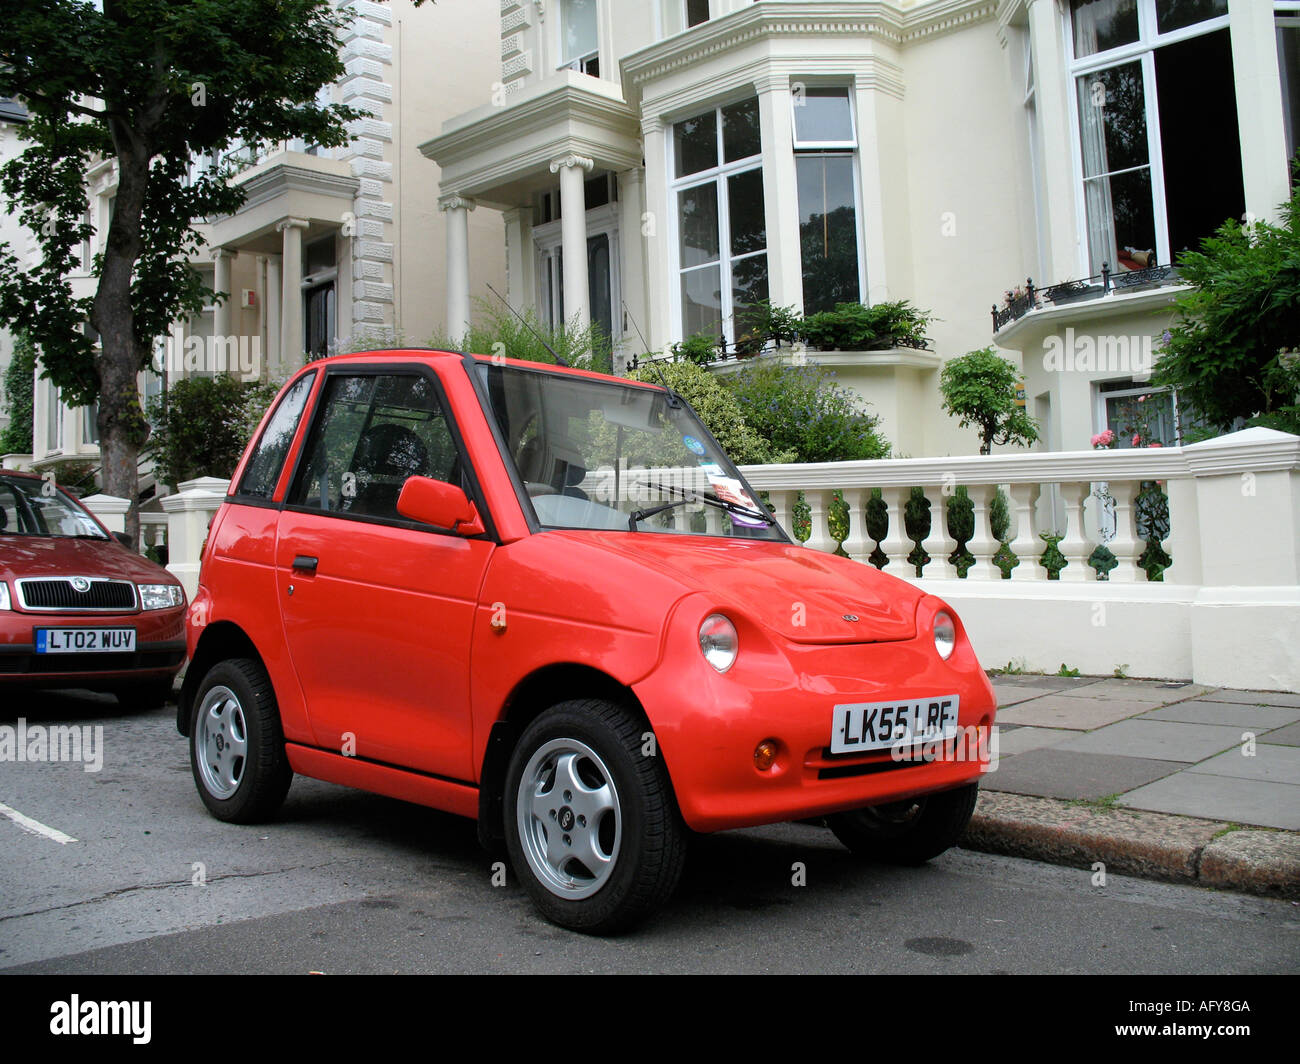 Reva G Wiz electric car on a London street in the UK Stock Photo